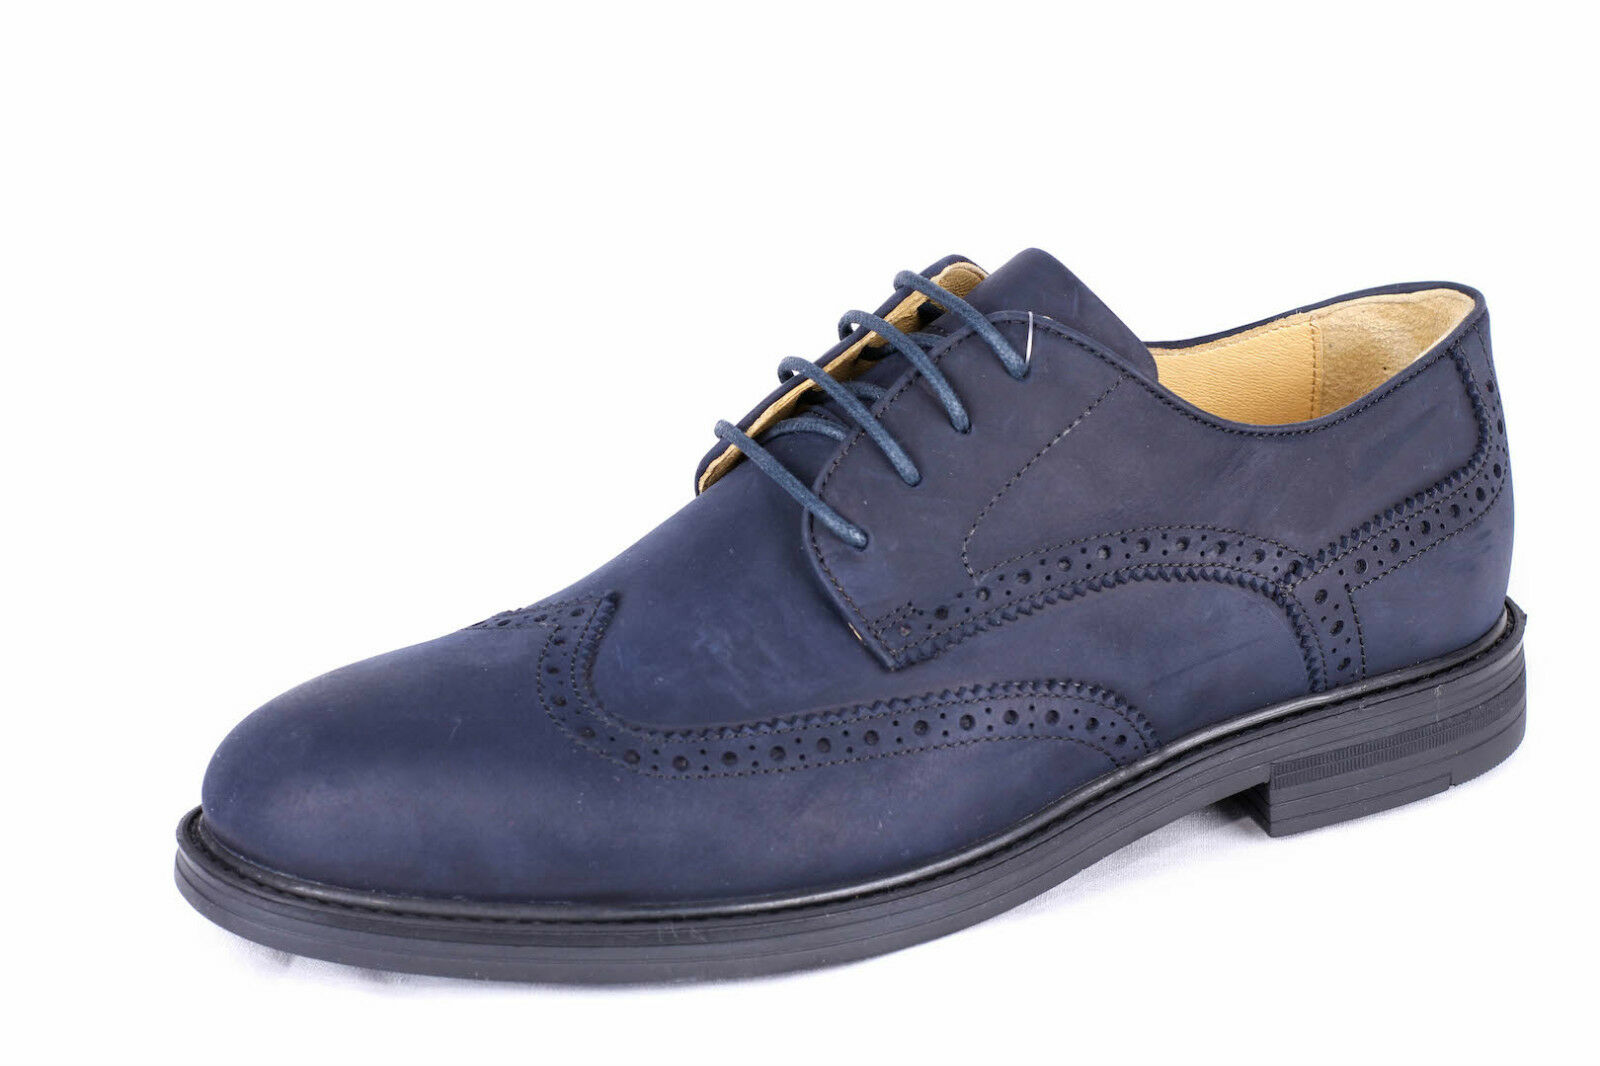 Size 7 (41) Steptronic Navy bluee brogue oily leather lace gibson shoes sheepskin